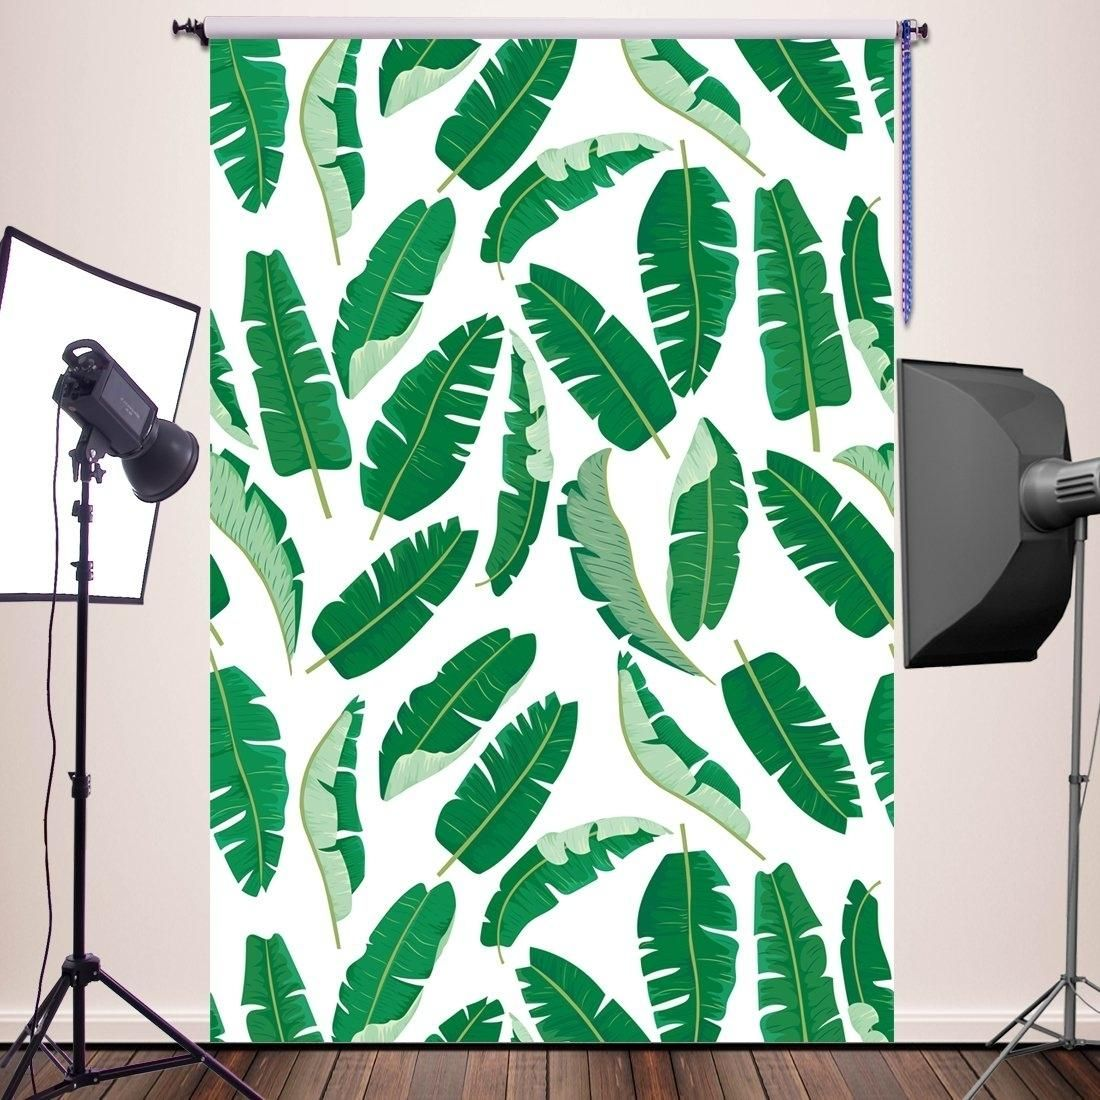 5x7ft Photography Backdrop Newborn Photo Props Baby Studio Props Photographer Photo Booth Banana palm leaves party